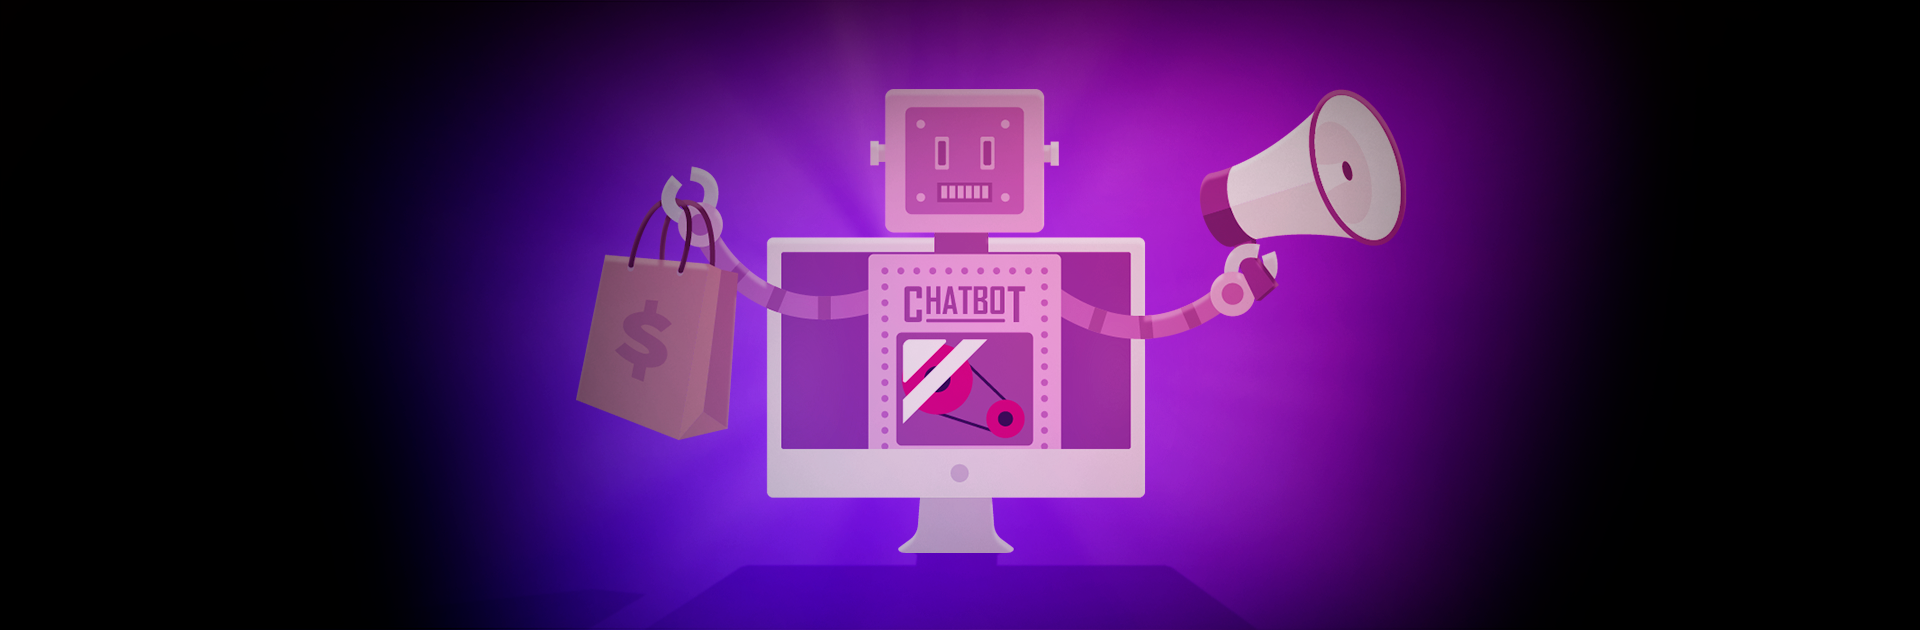 O (incrível) potencial de uso de chatbots no marketing digital